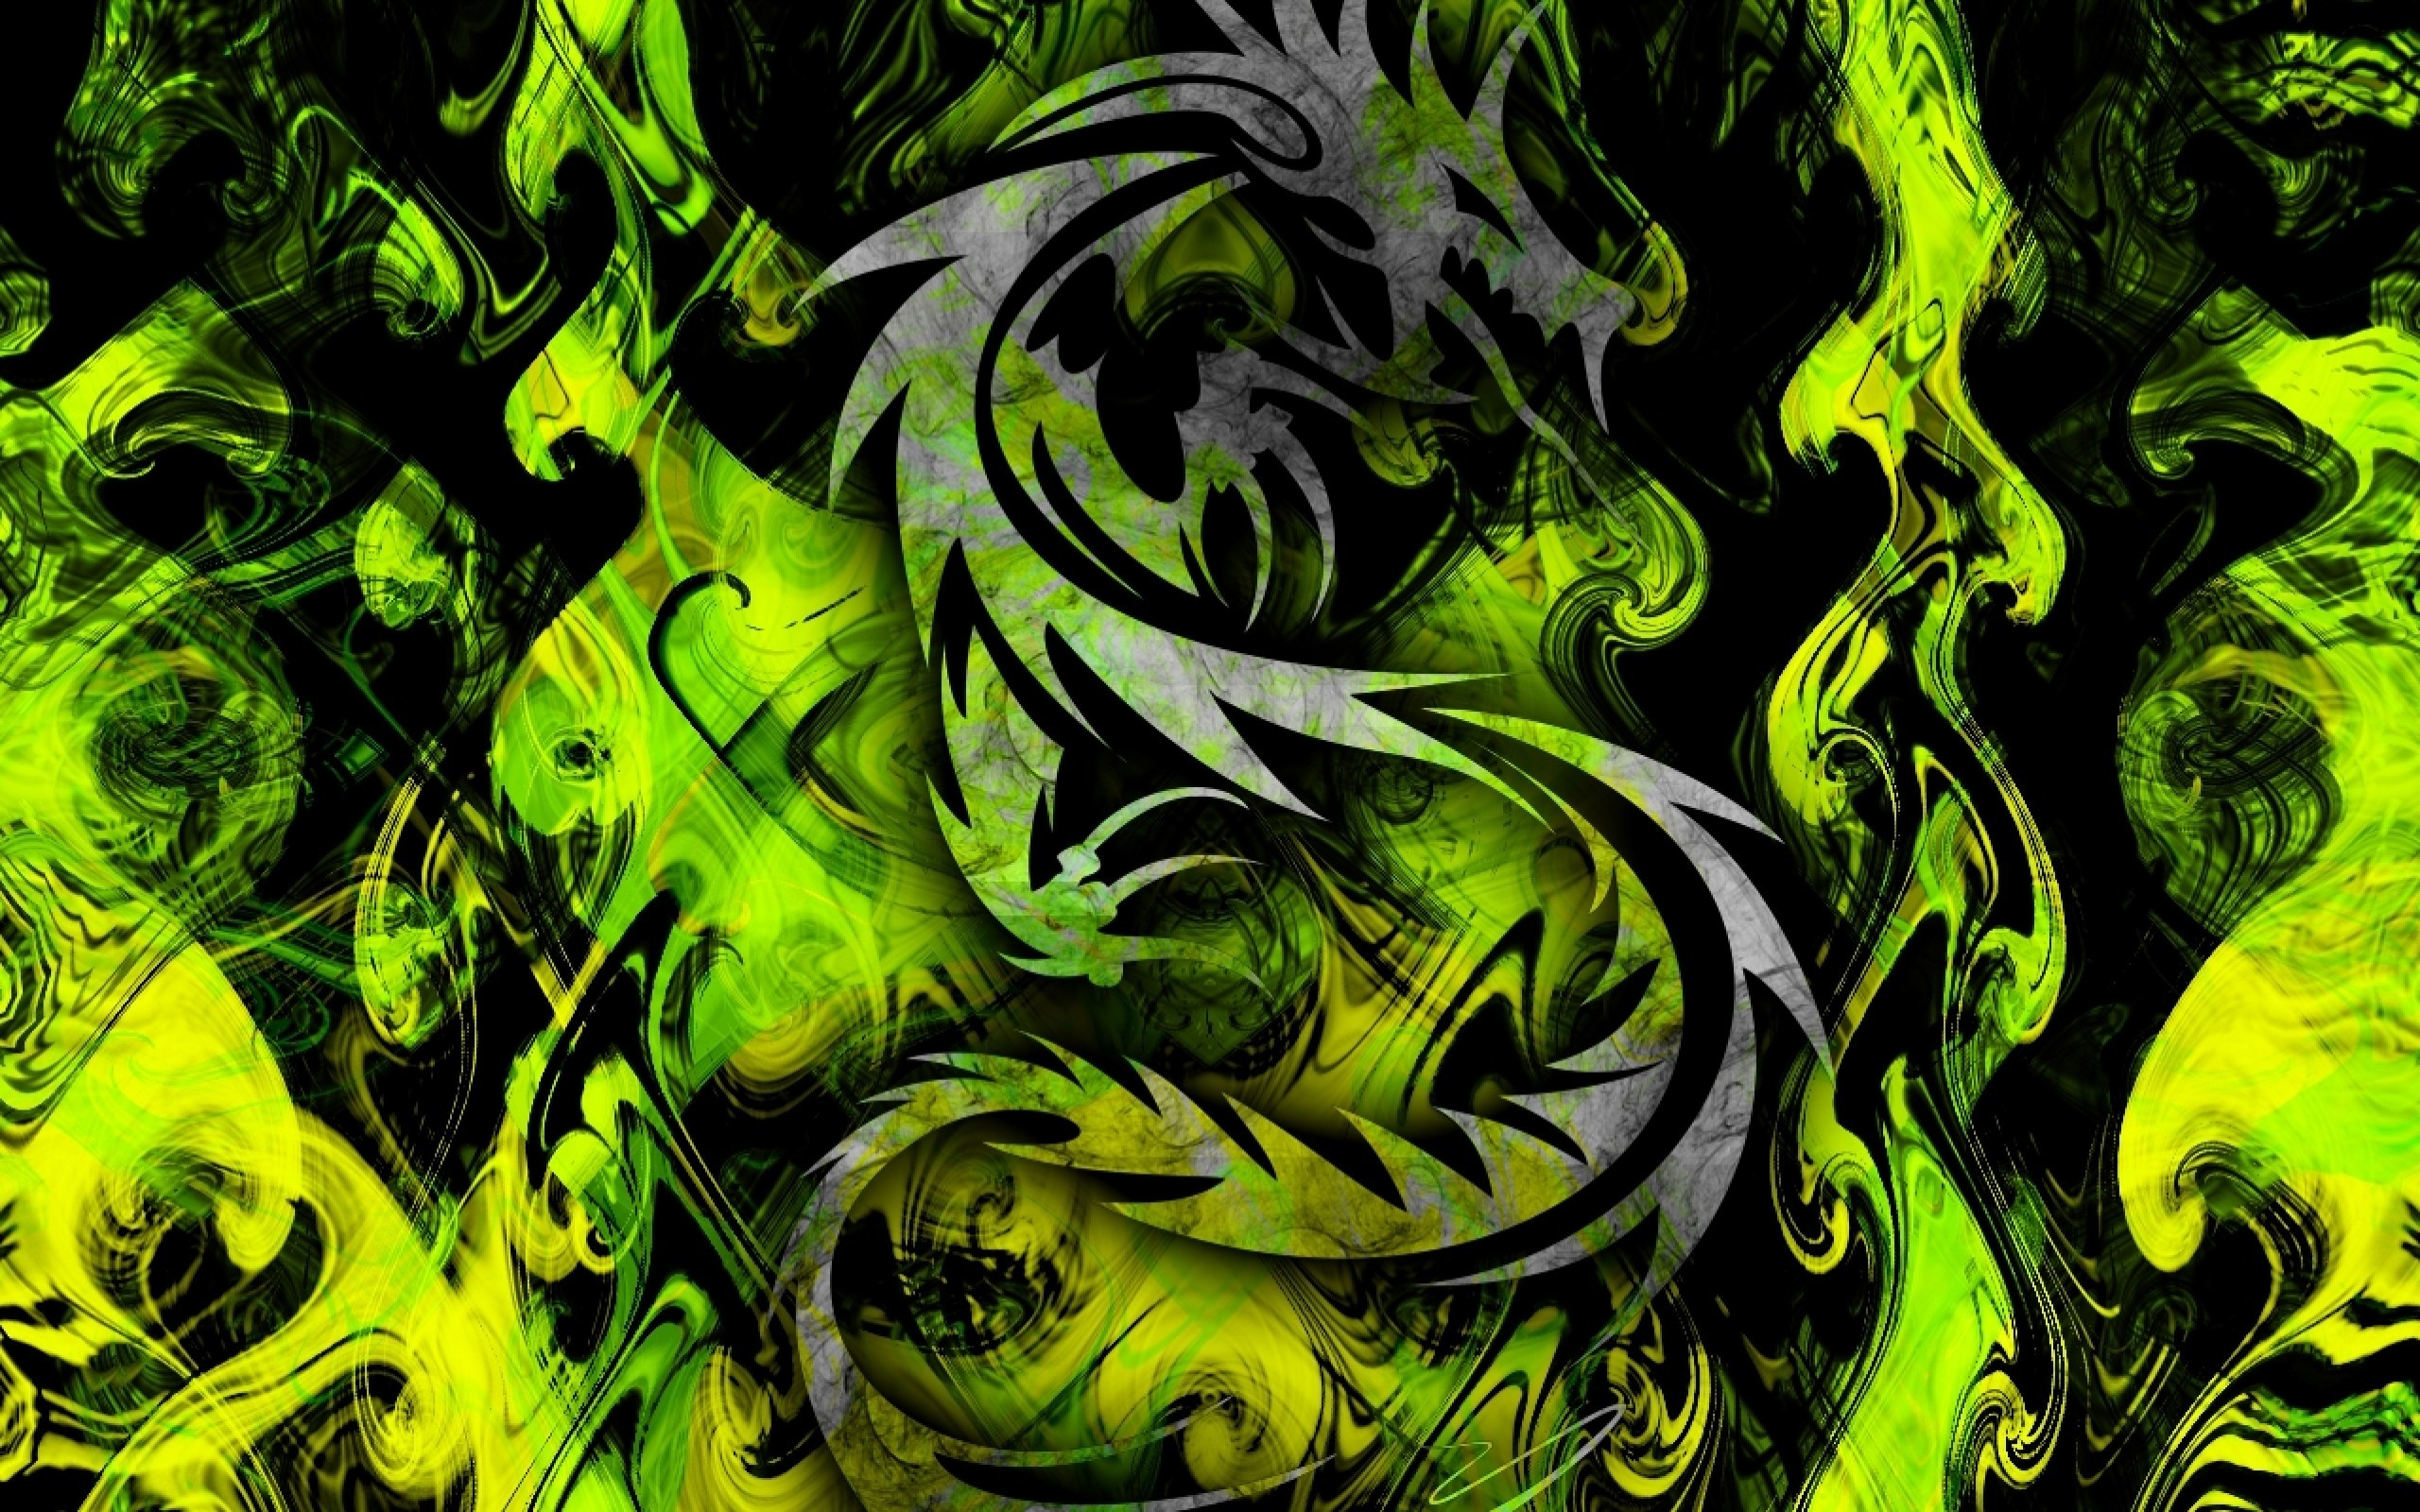 Wallpaper, Abstract, Cool, Ribbons, Color, Green, Images – 1642807